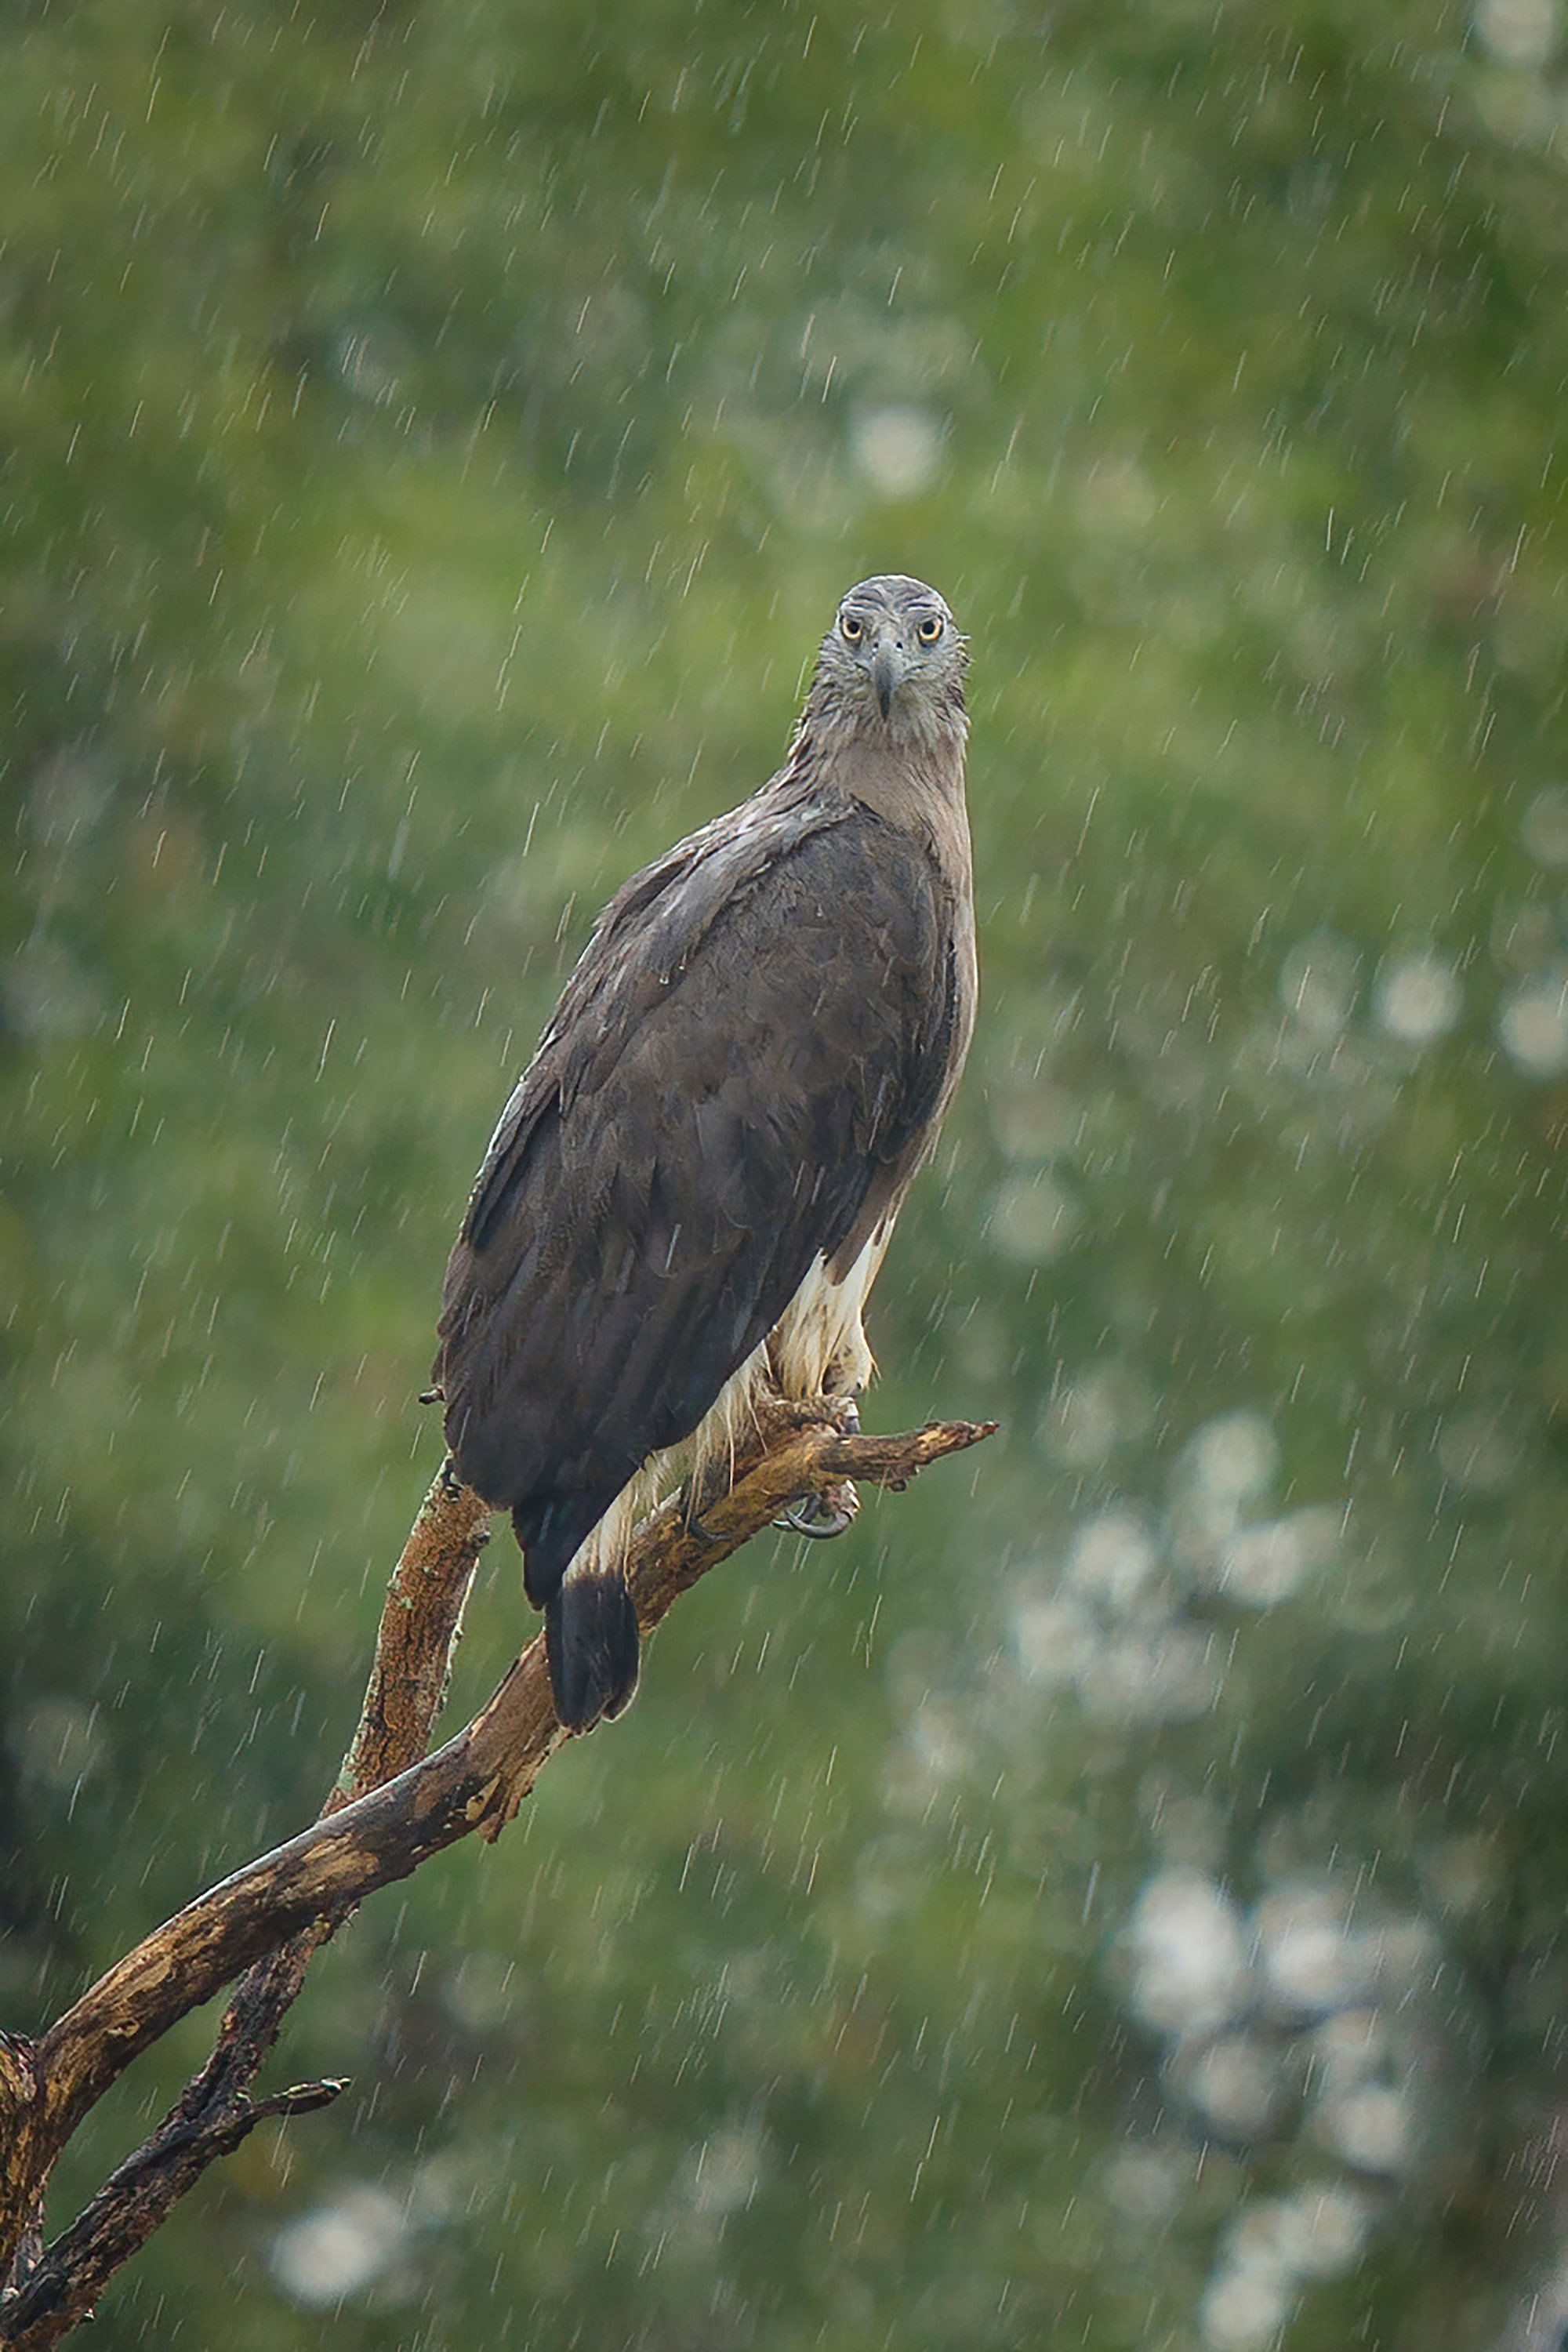 Sony Alpha 7R IV is tough in wet conditions. Grey-headed Fish Eagle in rain with approx. 3.8x crop, captured by Sony Alpha 7R IV.